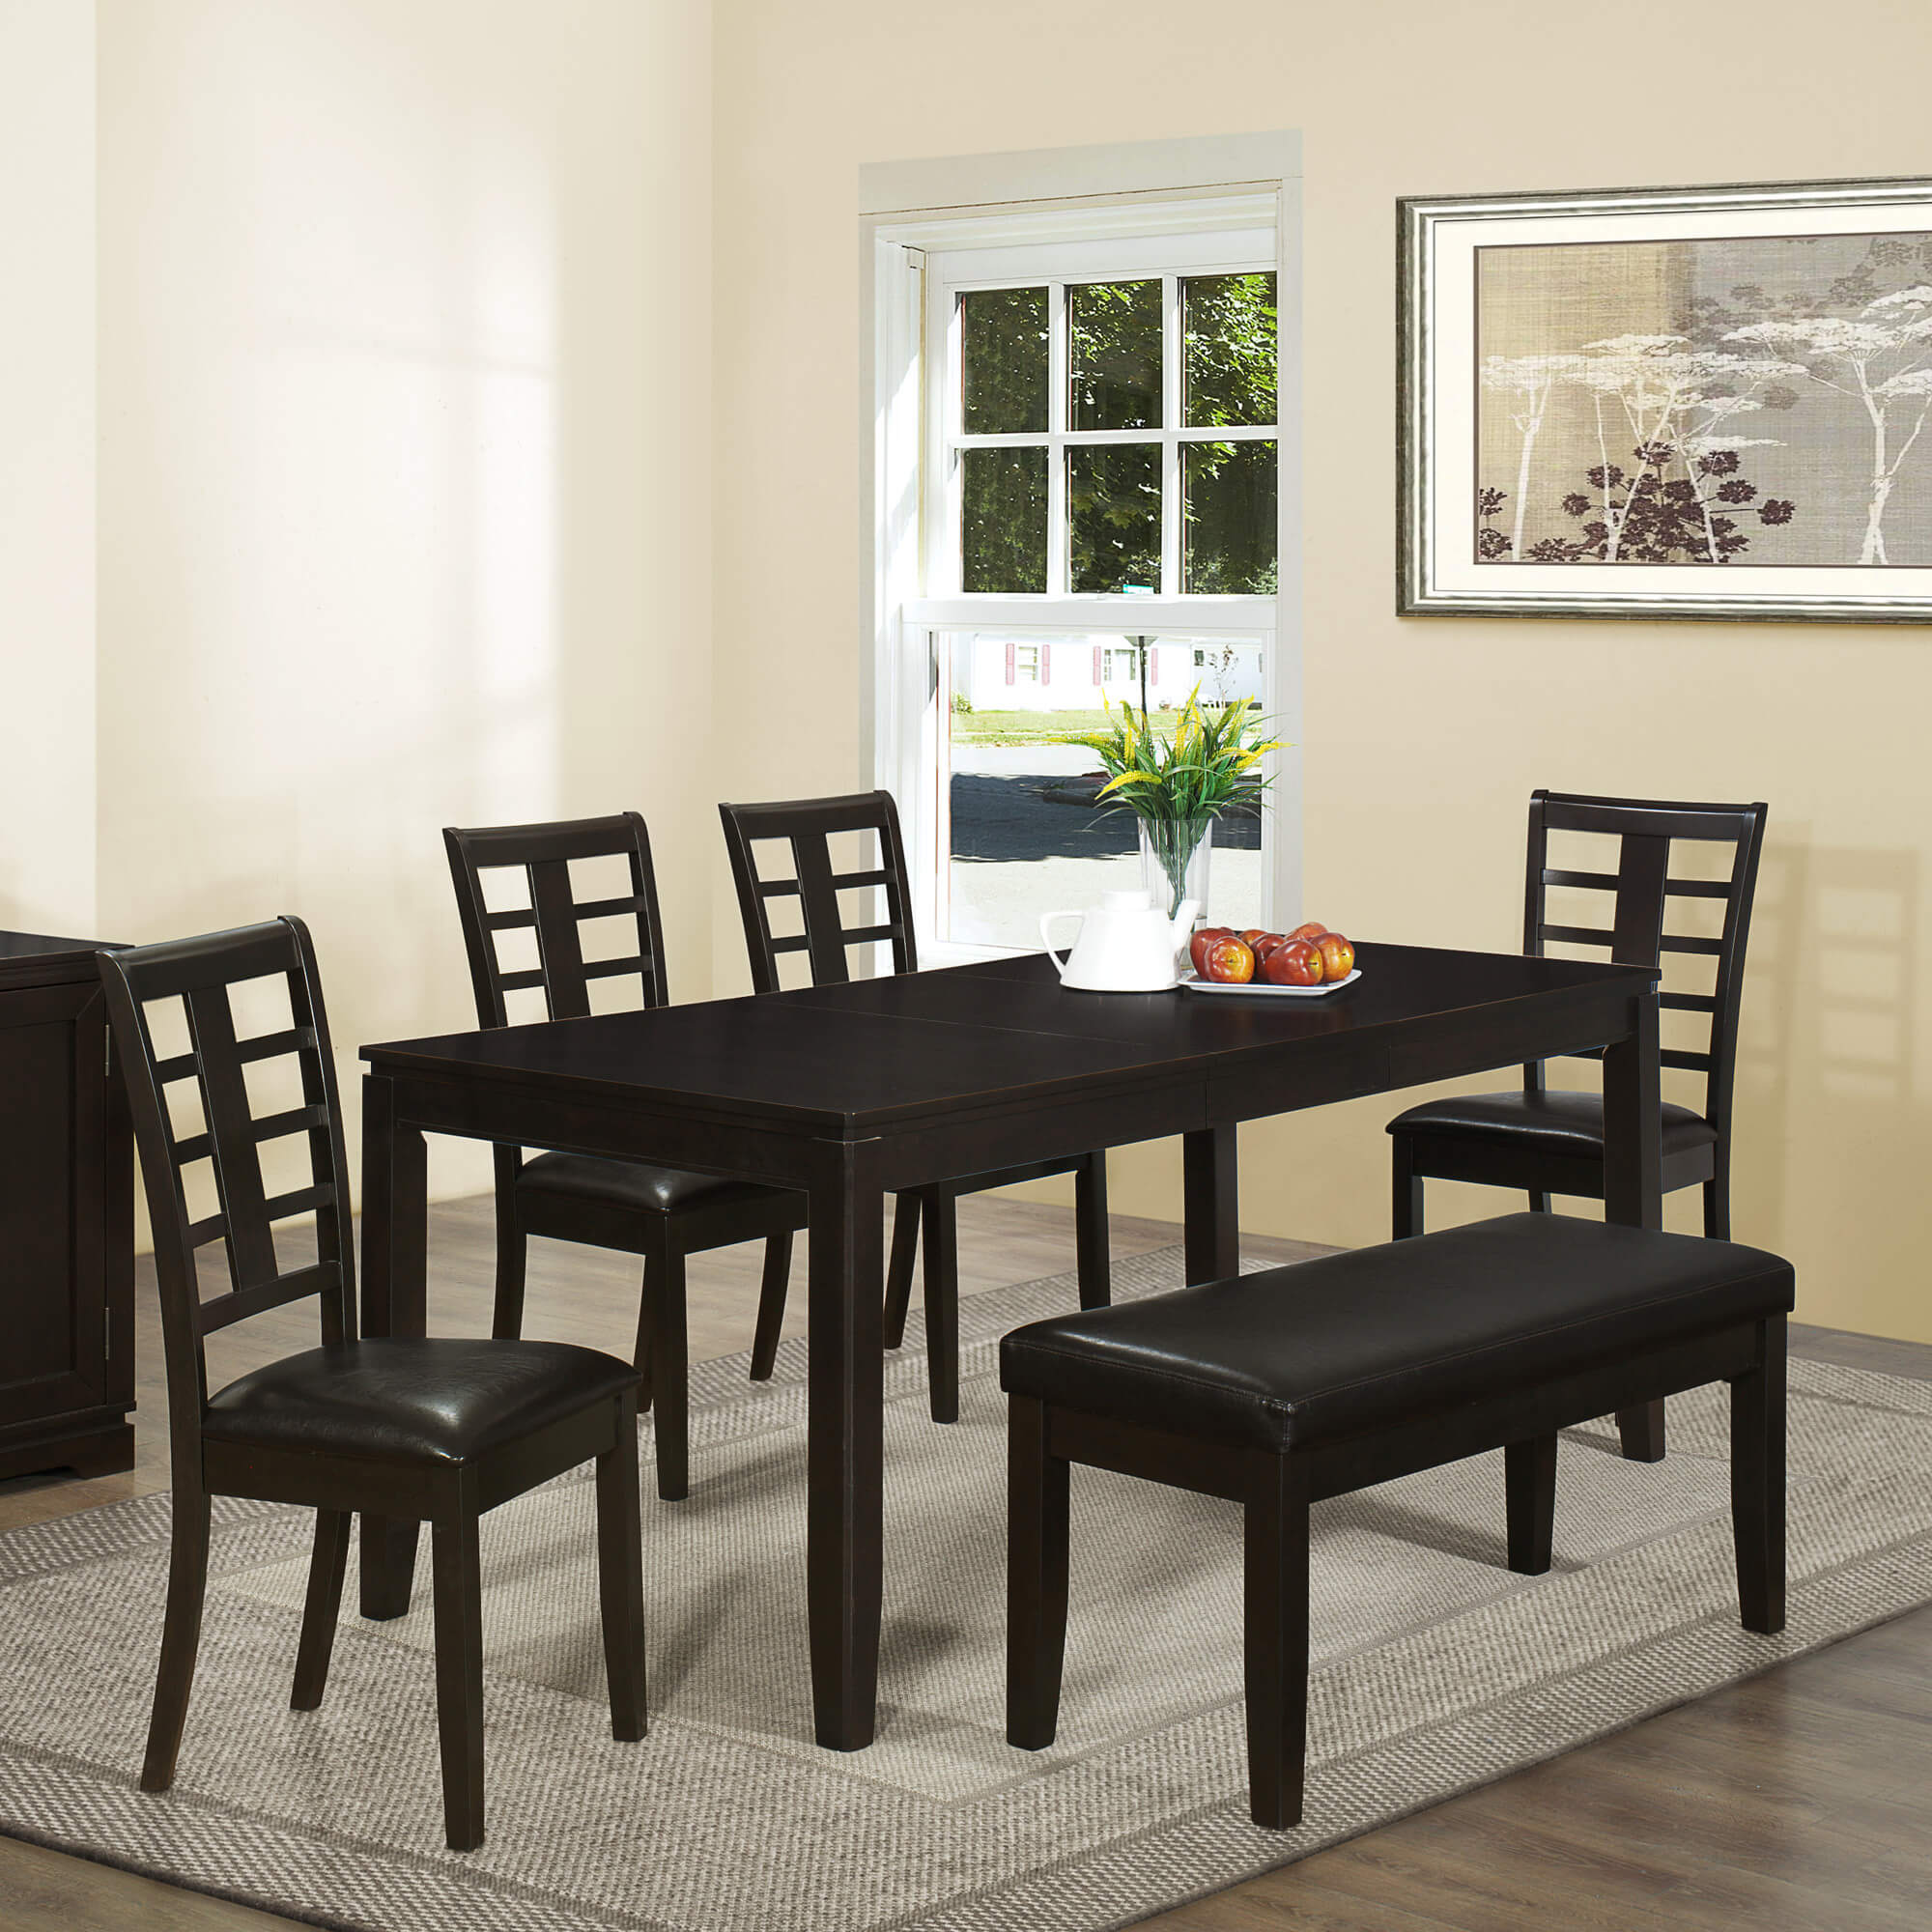 corner furniture table size piece costco full of and chairs macys set dinning for room bayside sets bench round dining kitchen